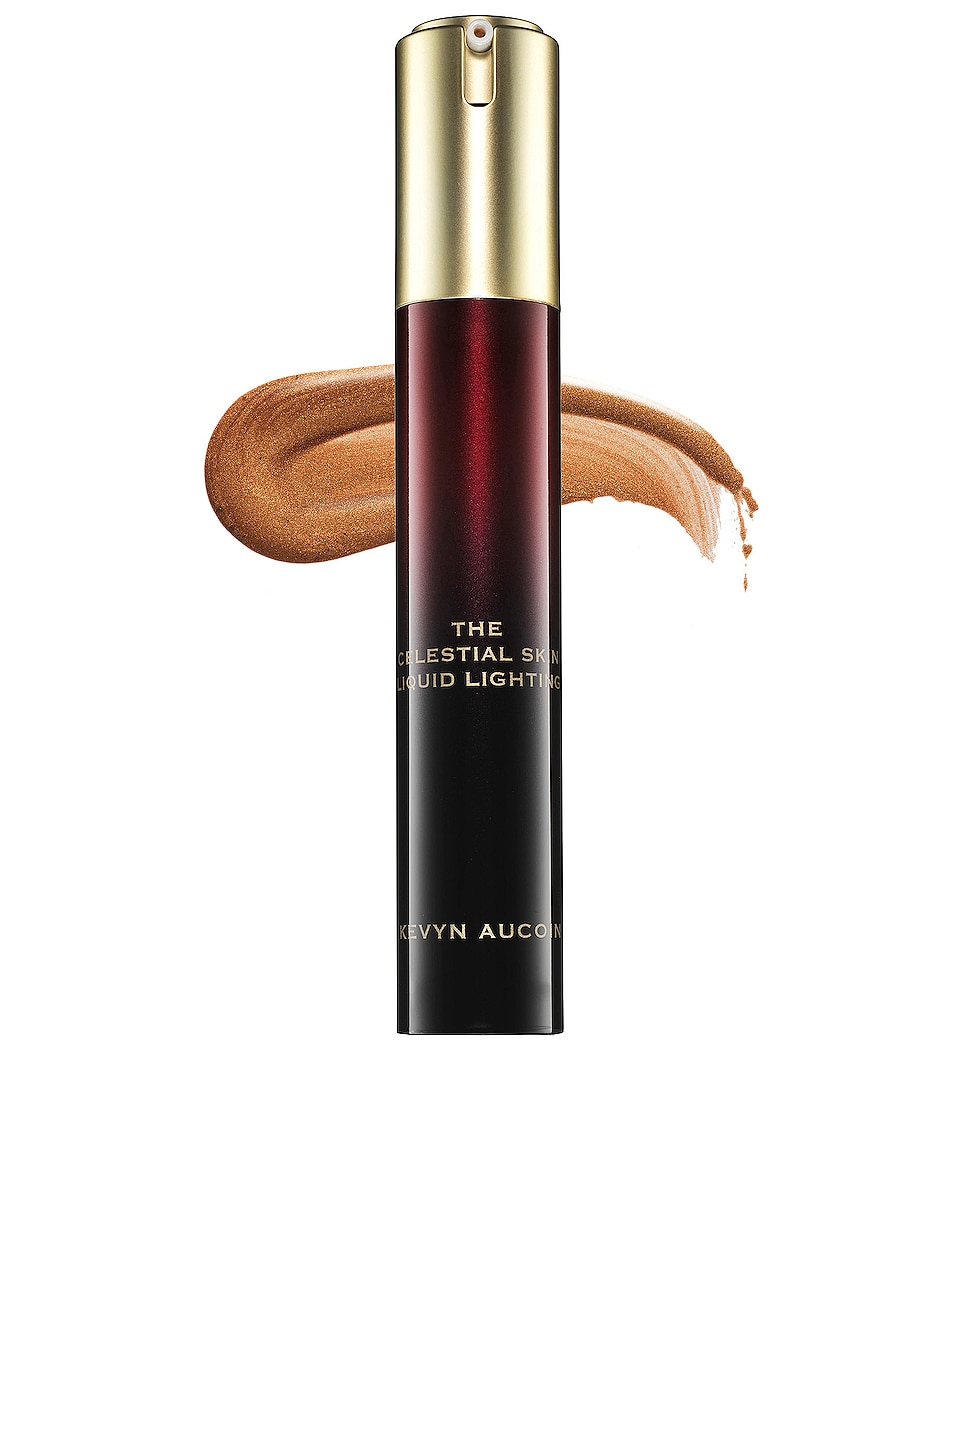 Kevyn Aucoin The Celestial Skin Liquid Lighting in Sunlight